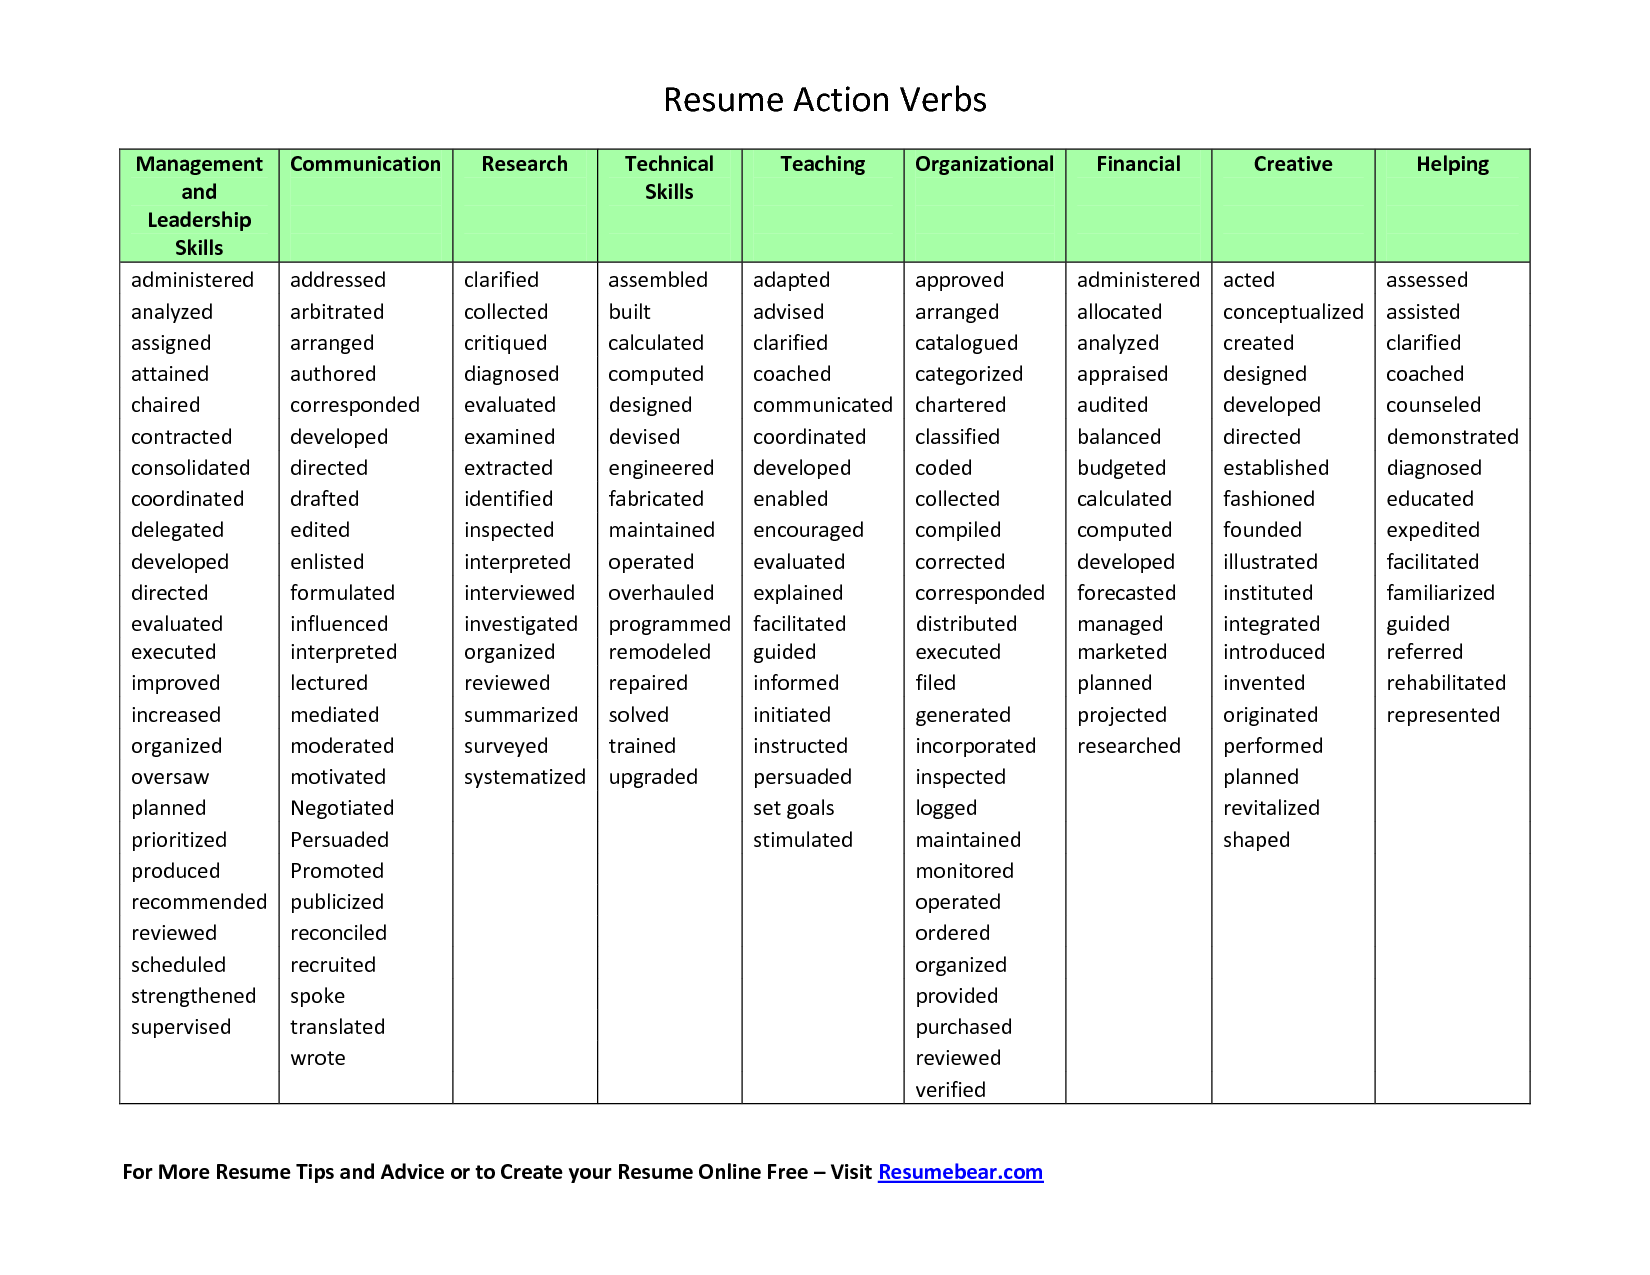 Resume Adjectives List Verbs For Resume Best Template Collection 9wlye0u8